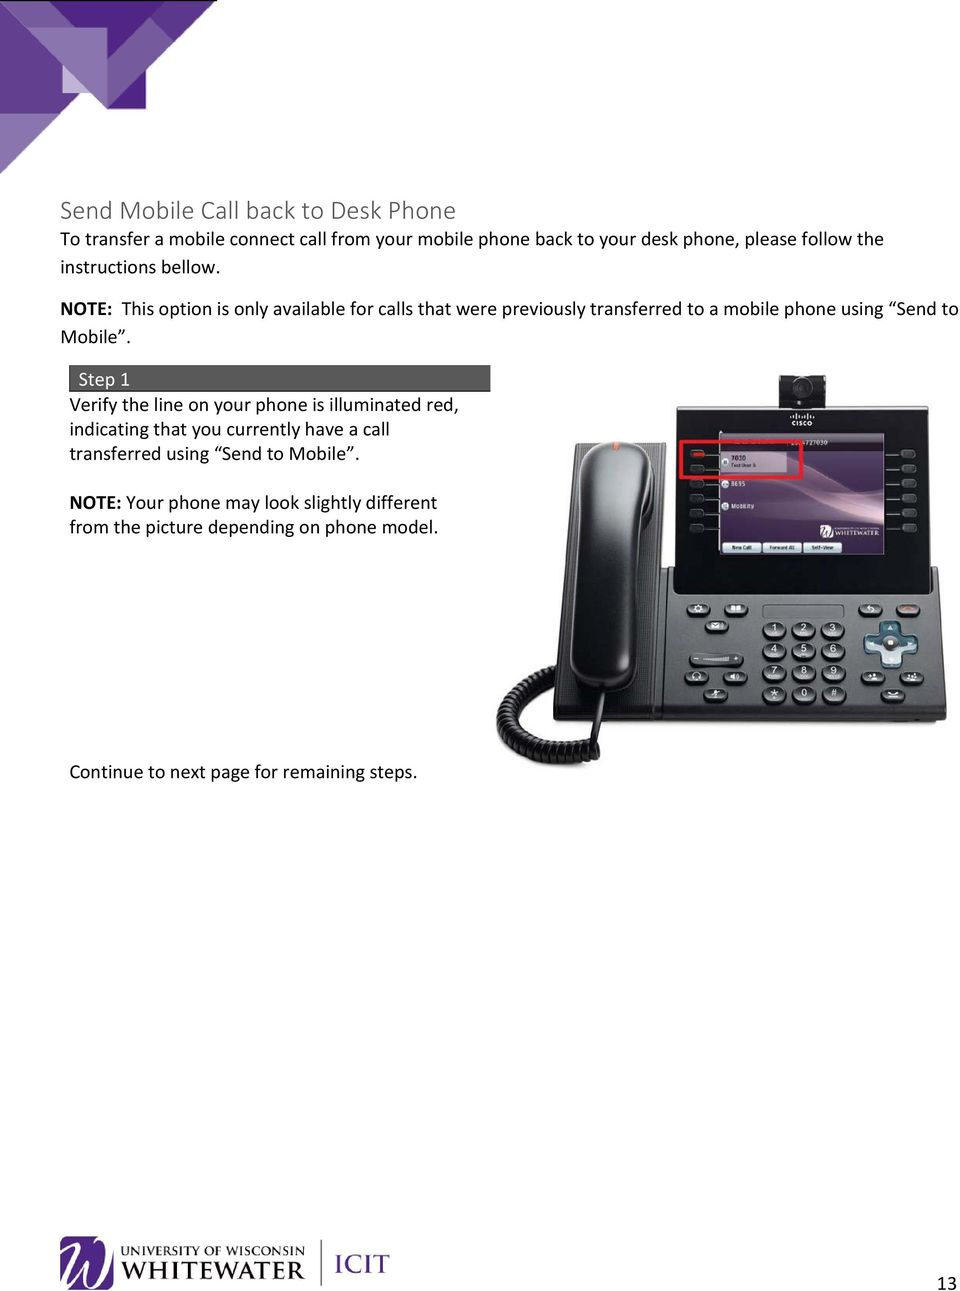 NOTE: This option is only available for calls that were previously transferred to a mobile phone using Send to Mobile.